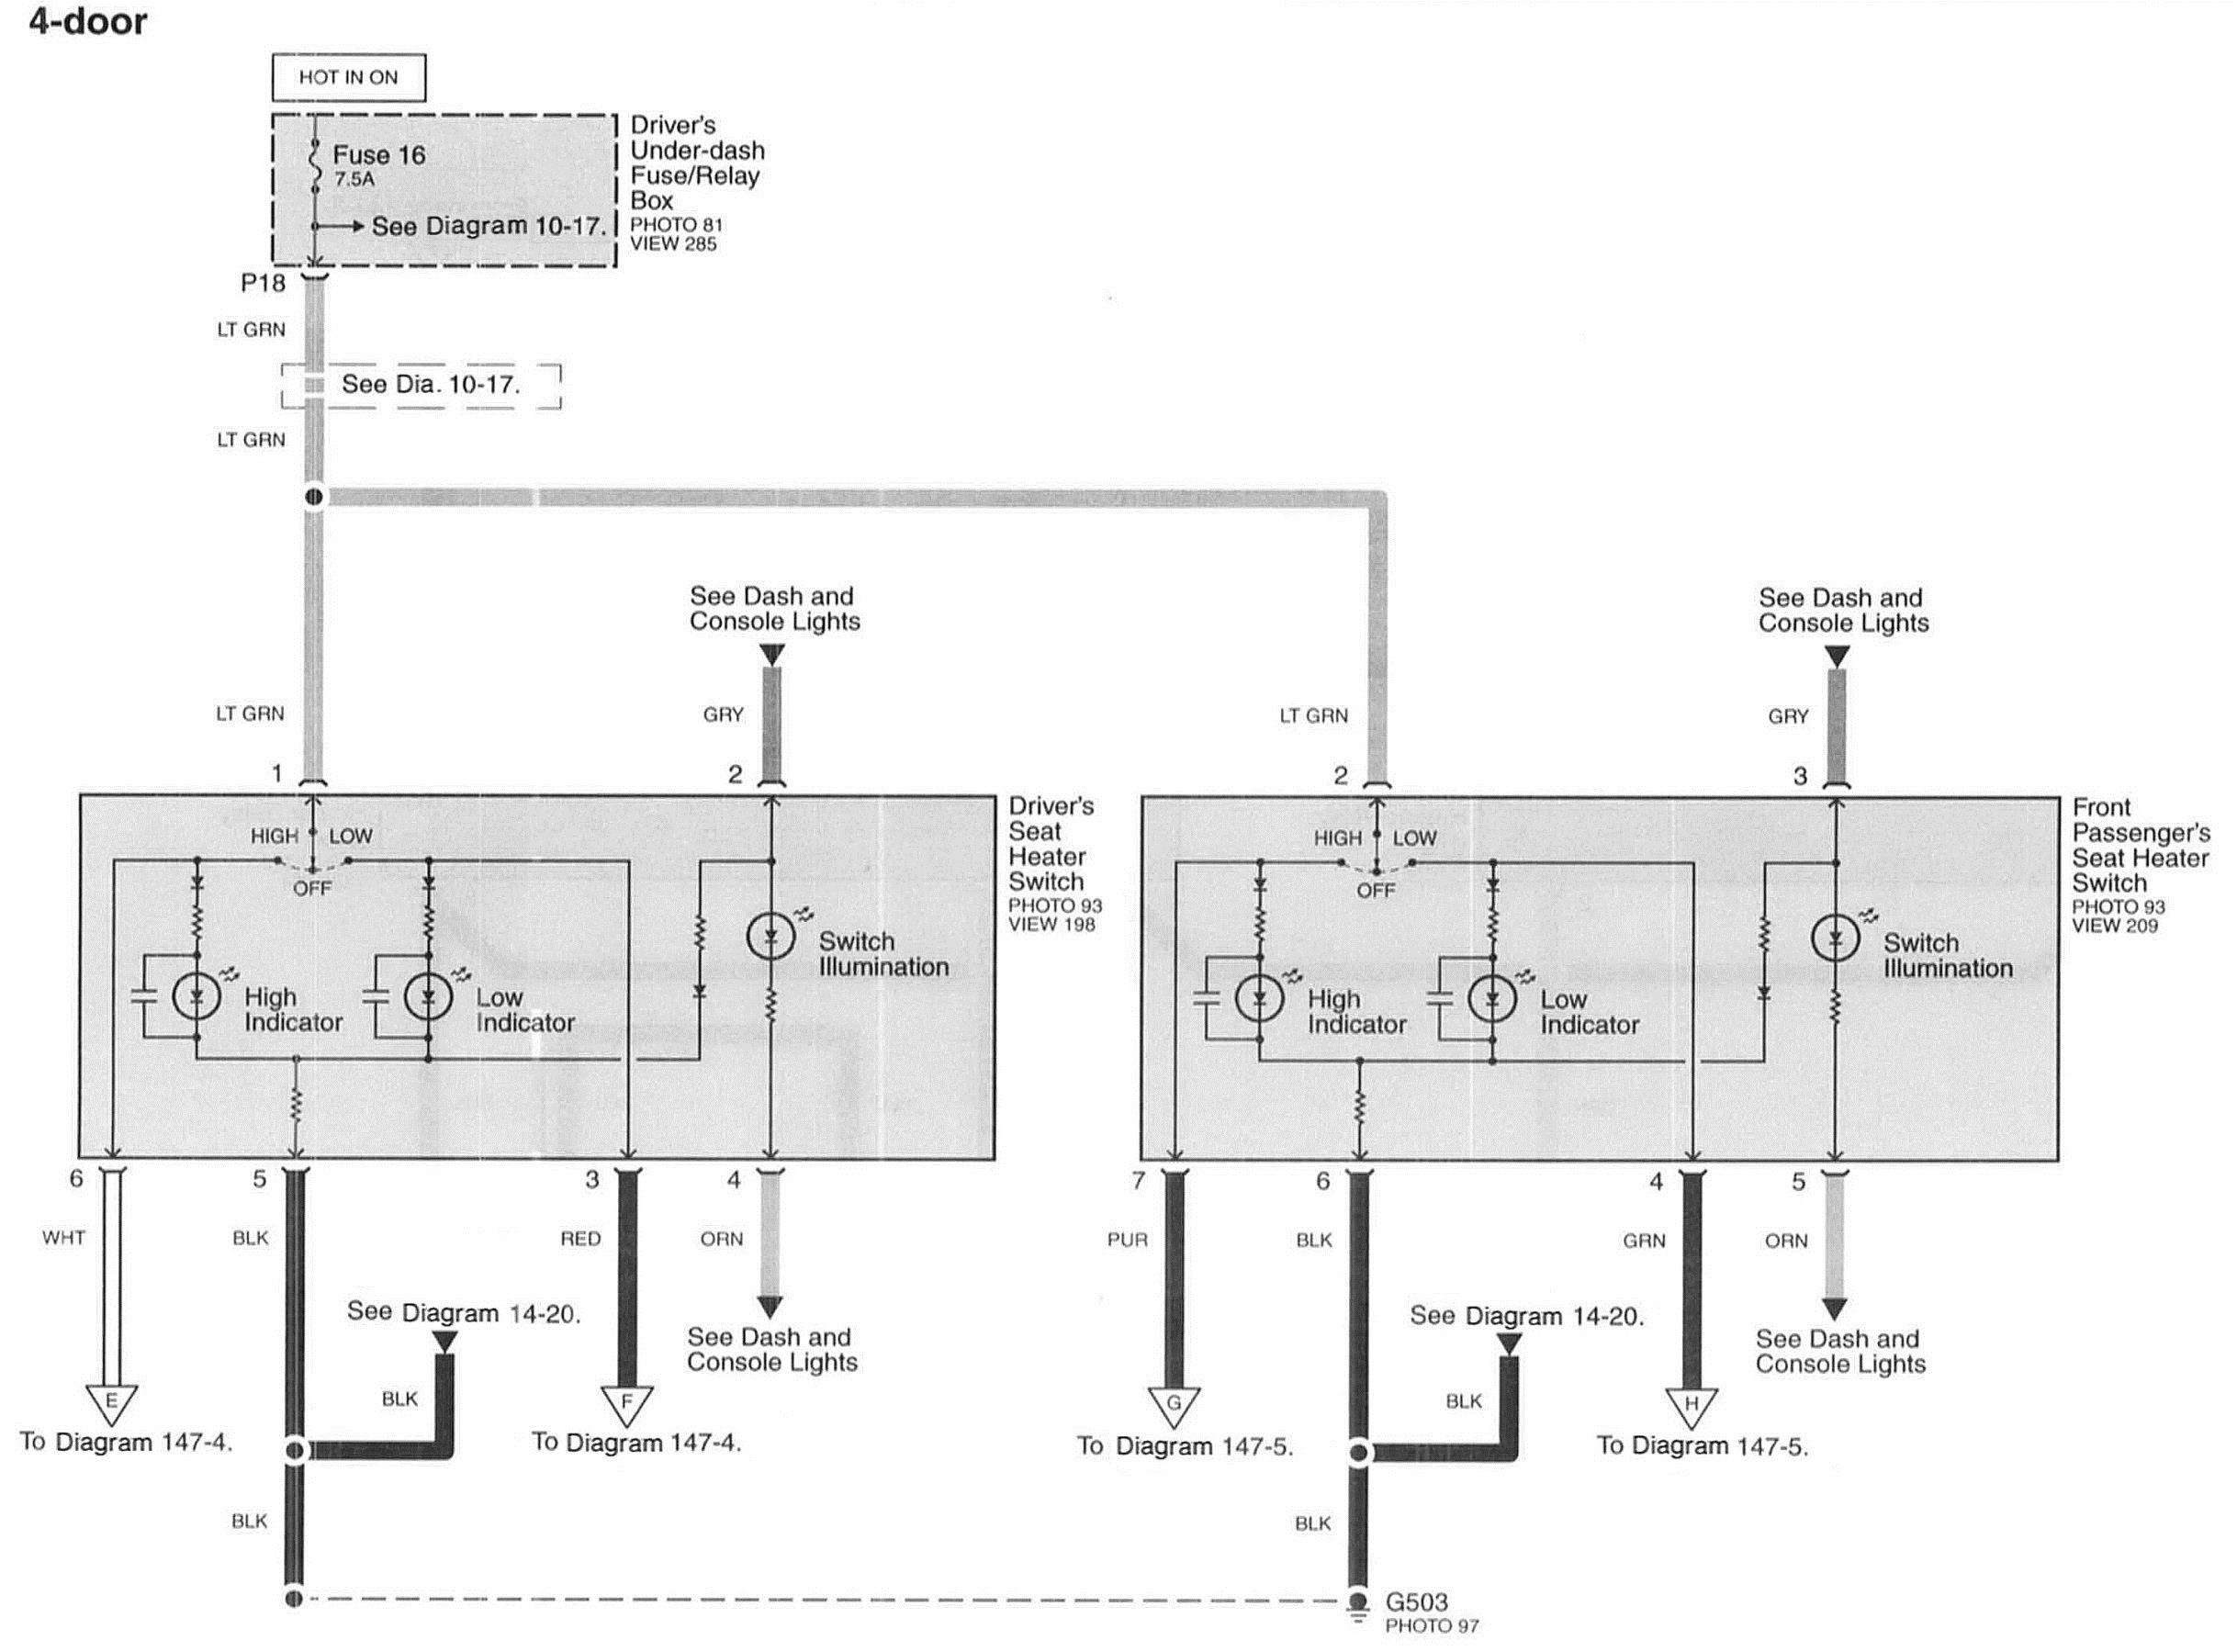 Where Can I Get Wiring Diagrams For Power Seat Plug And Heater Switch Replacing Manual Seats With Heated Power Seats